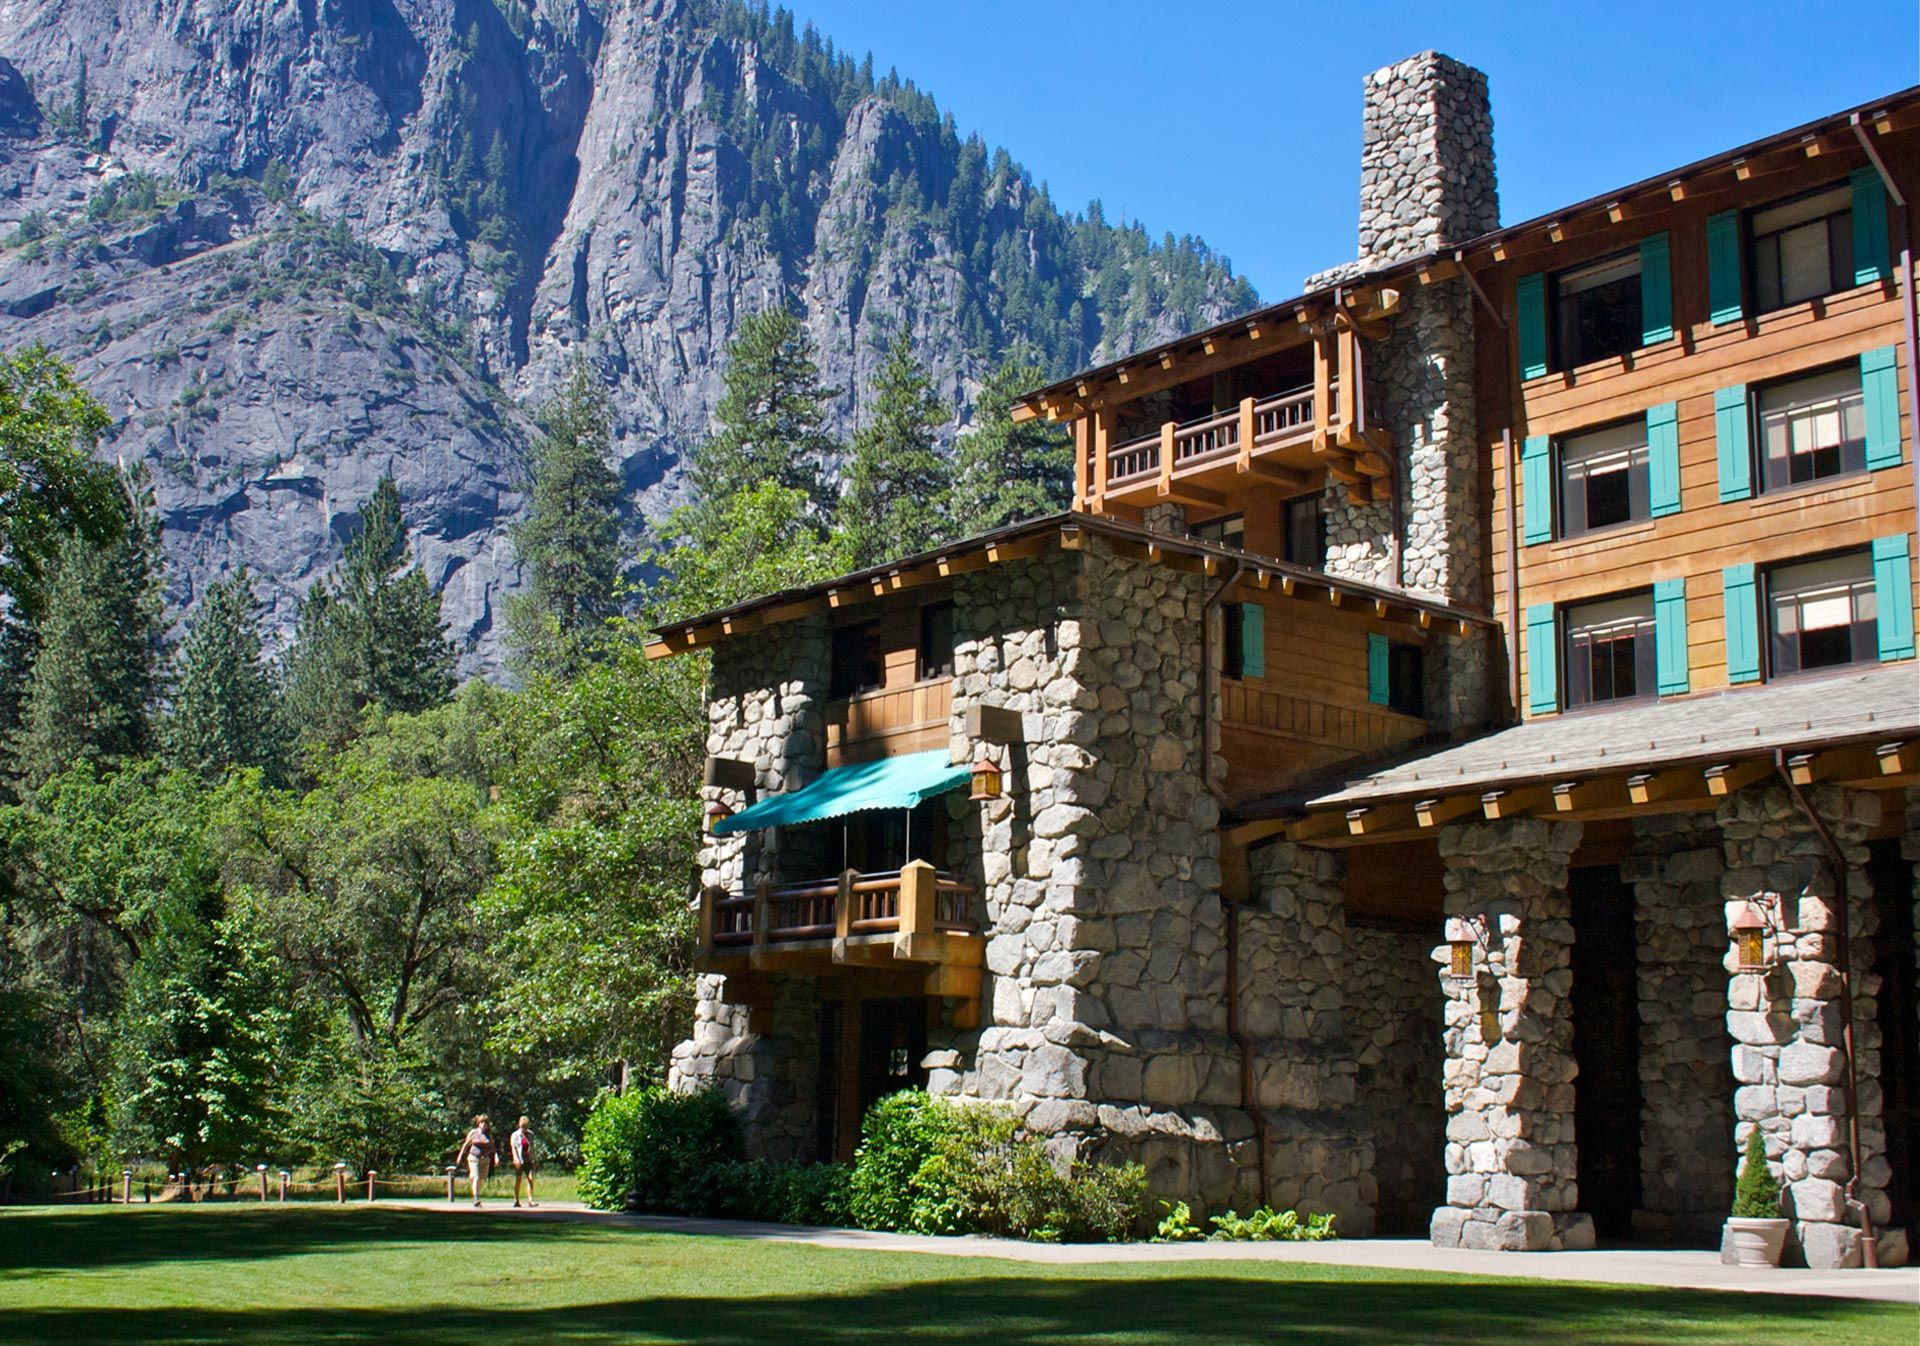 Yosemite's historic Ahwahnee Hotel, now to be called the Majestic Yosemite Hotel.